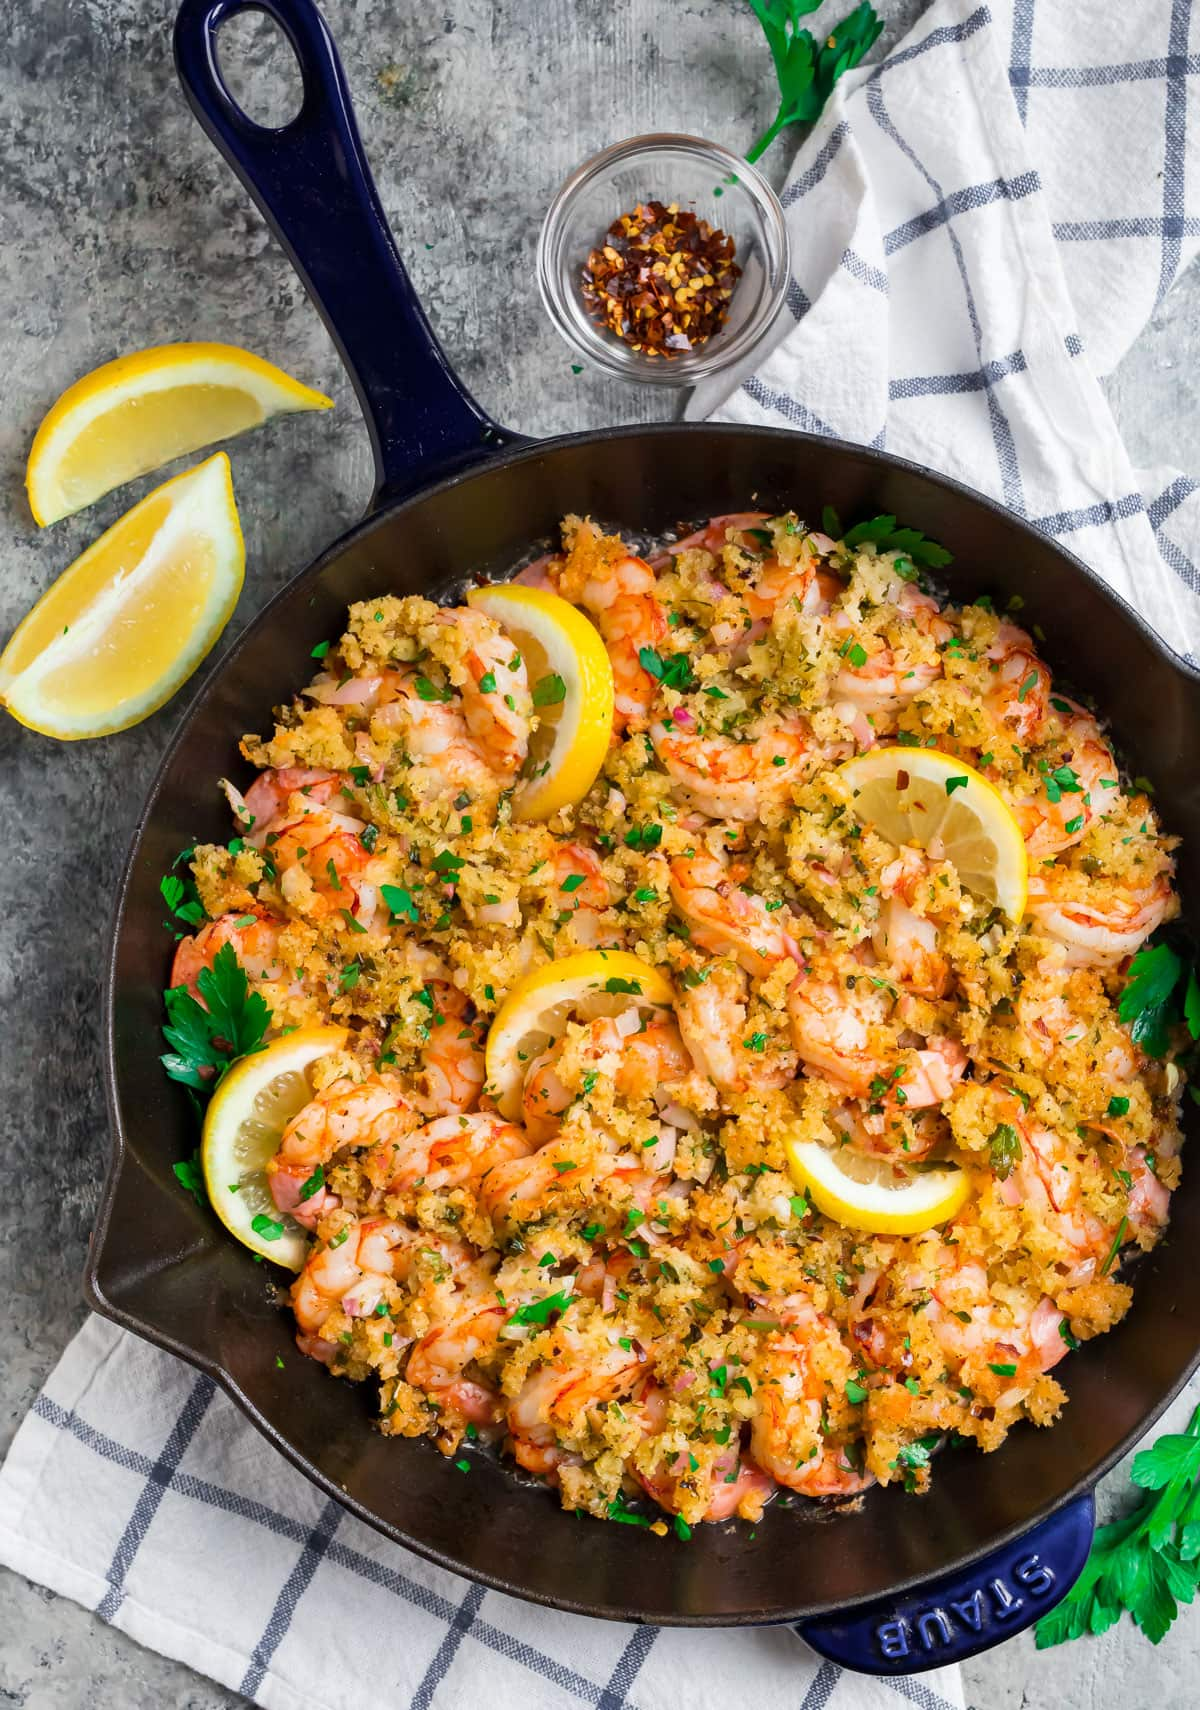 Baked Shrimp Scampi with red pepper flakes